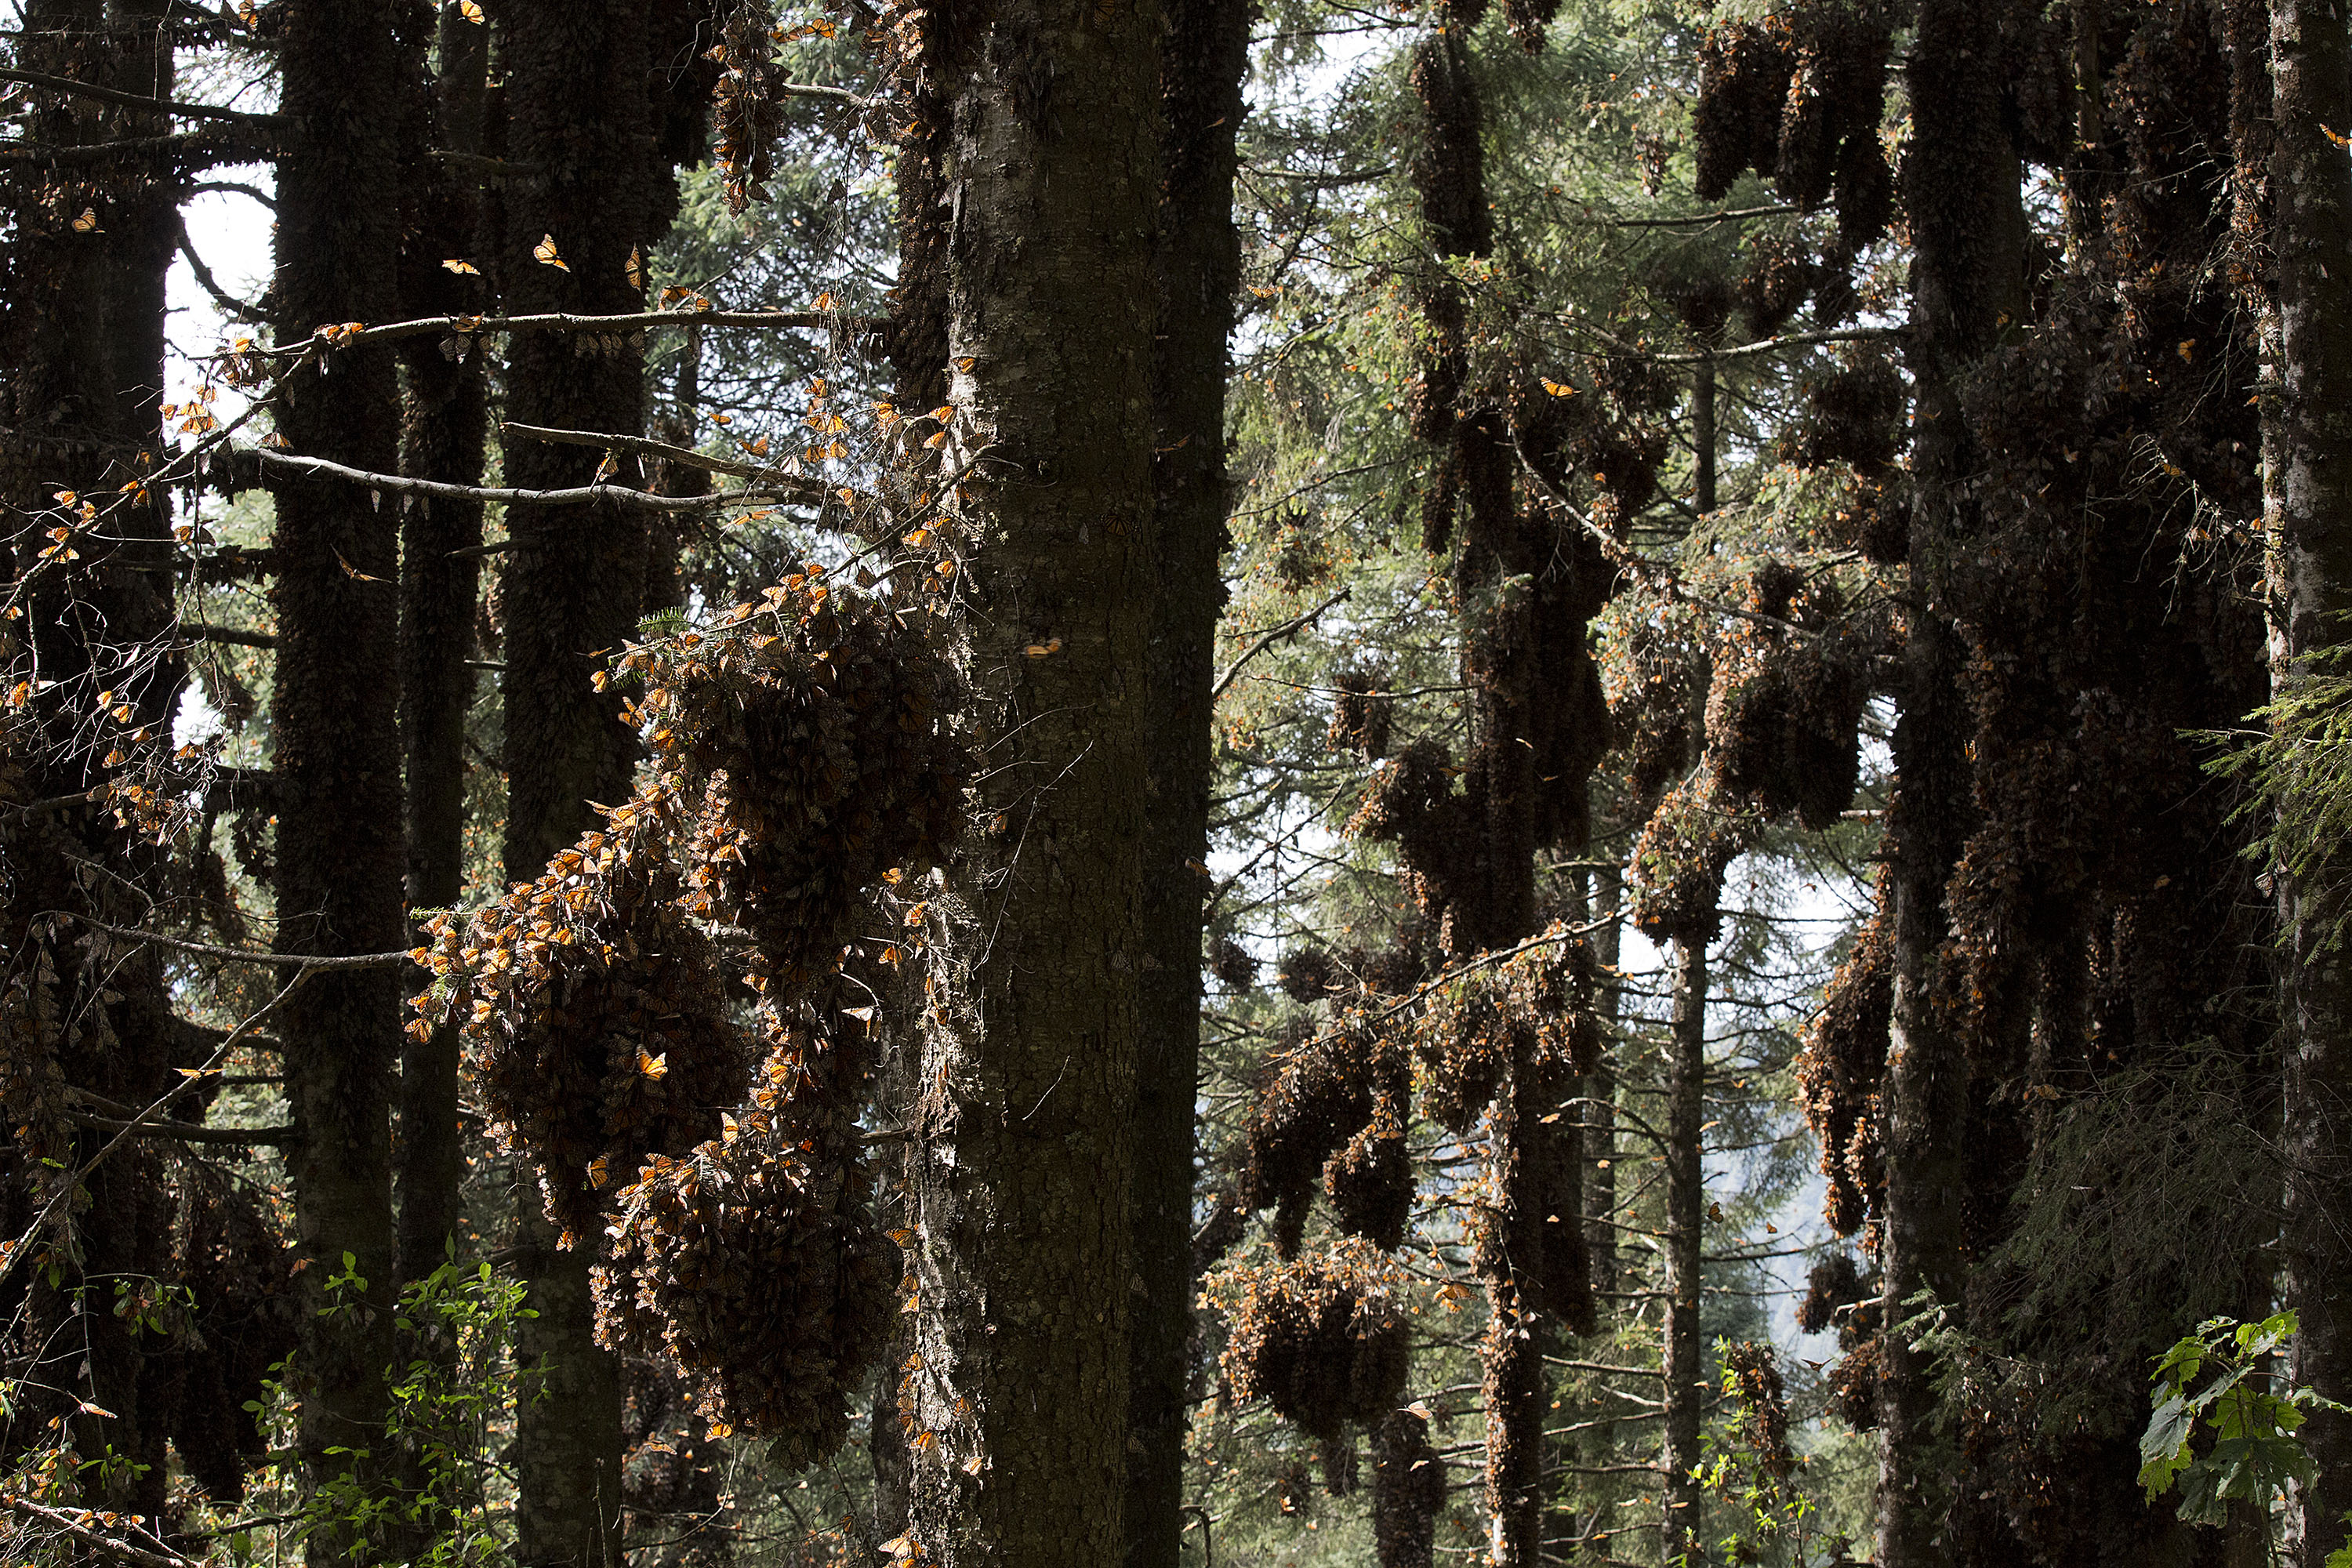 Monarch butterfly migration tree - photo#16